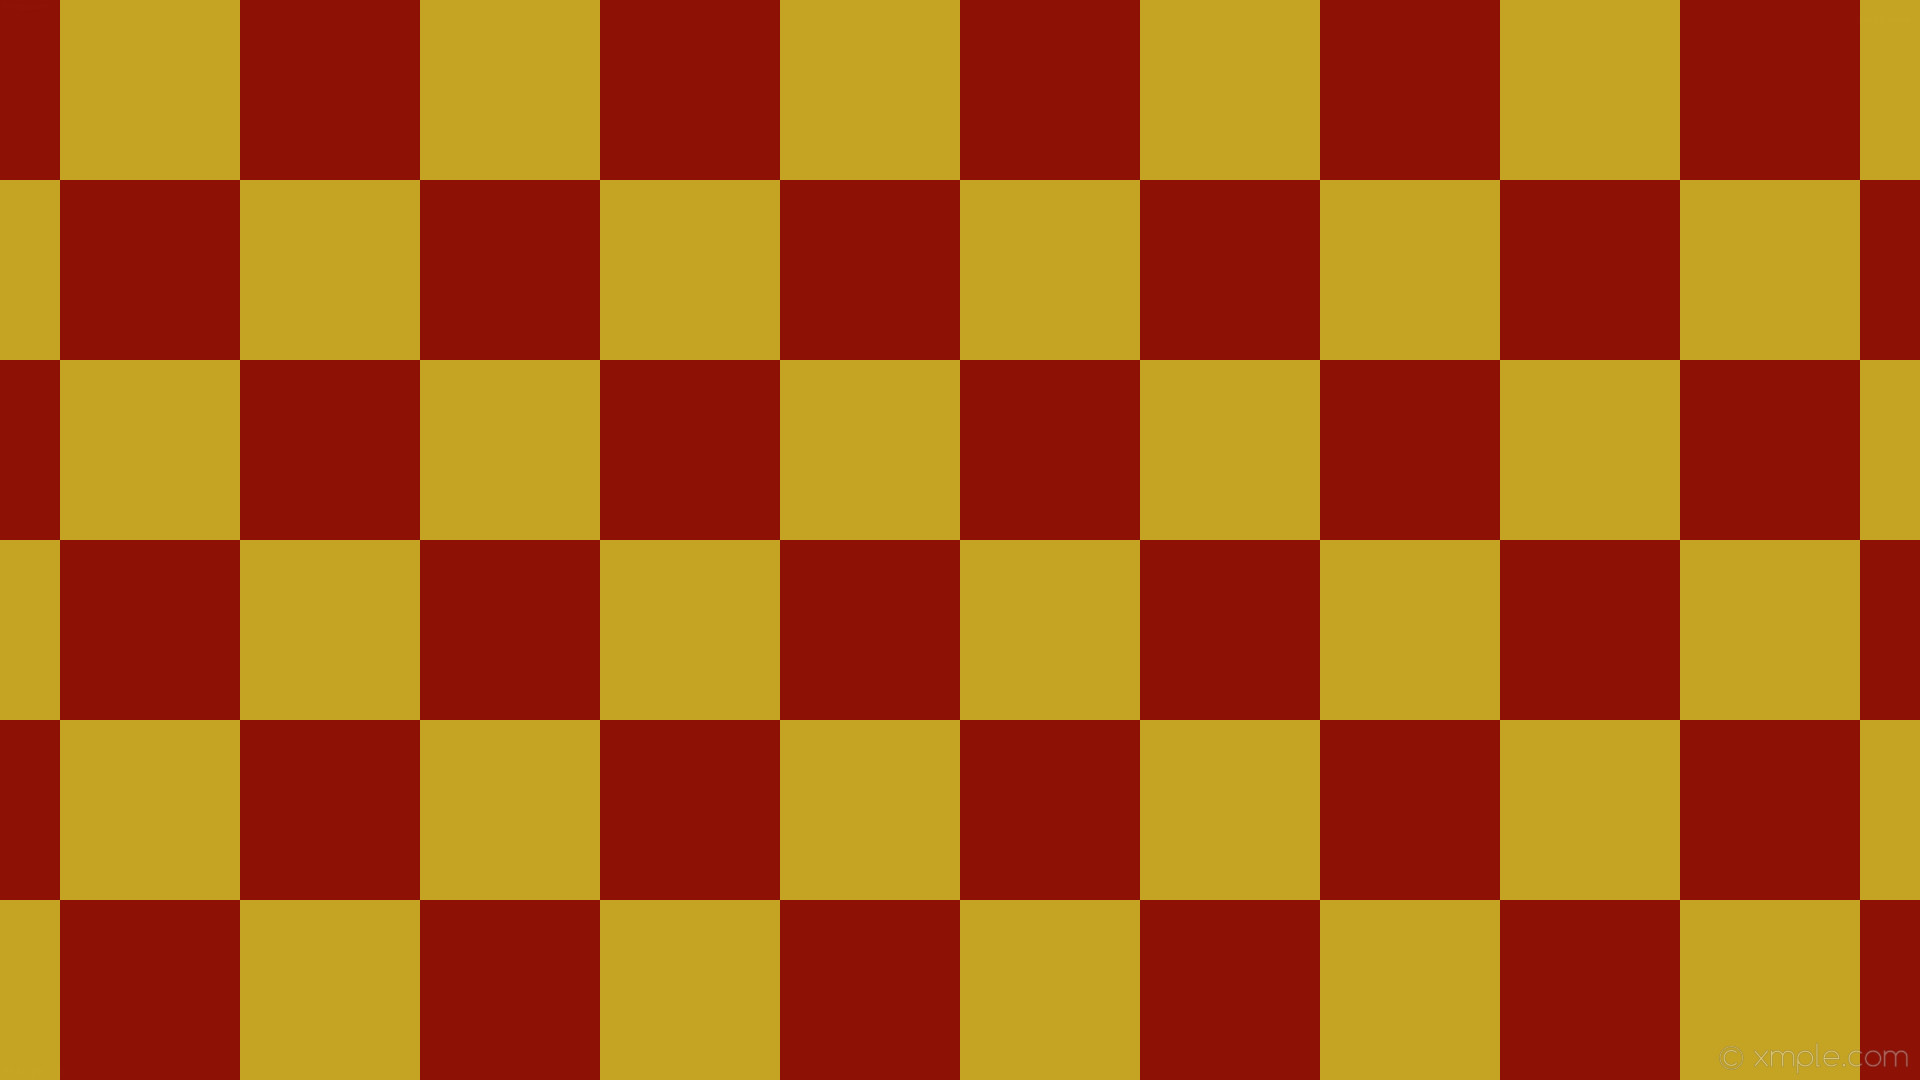 1920x1080 wallpaper squares red checkered yellow #c6a423 #8d1105 diagonal 0° 180px